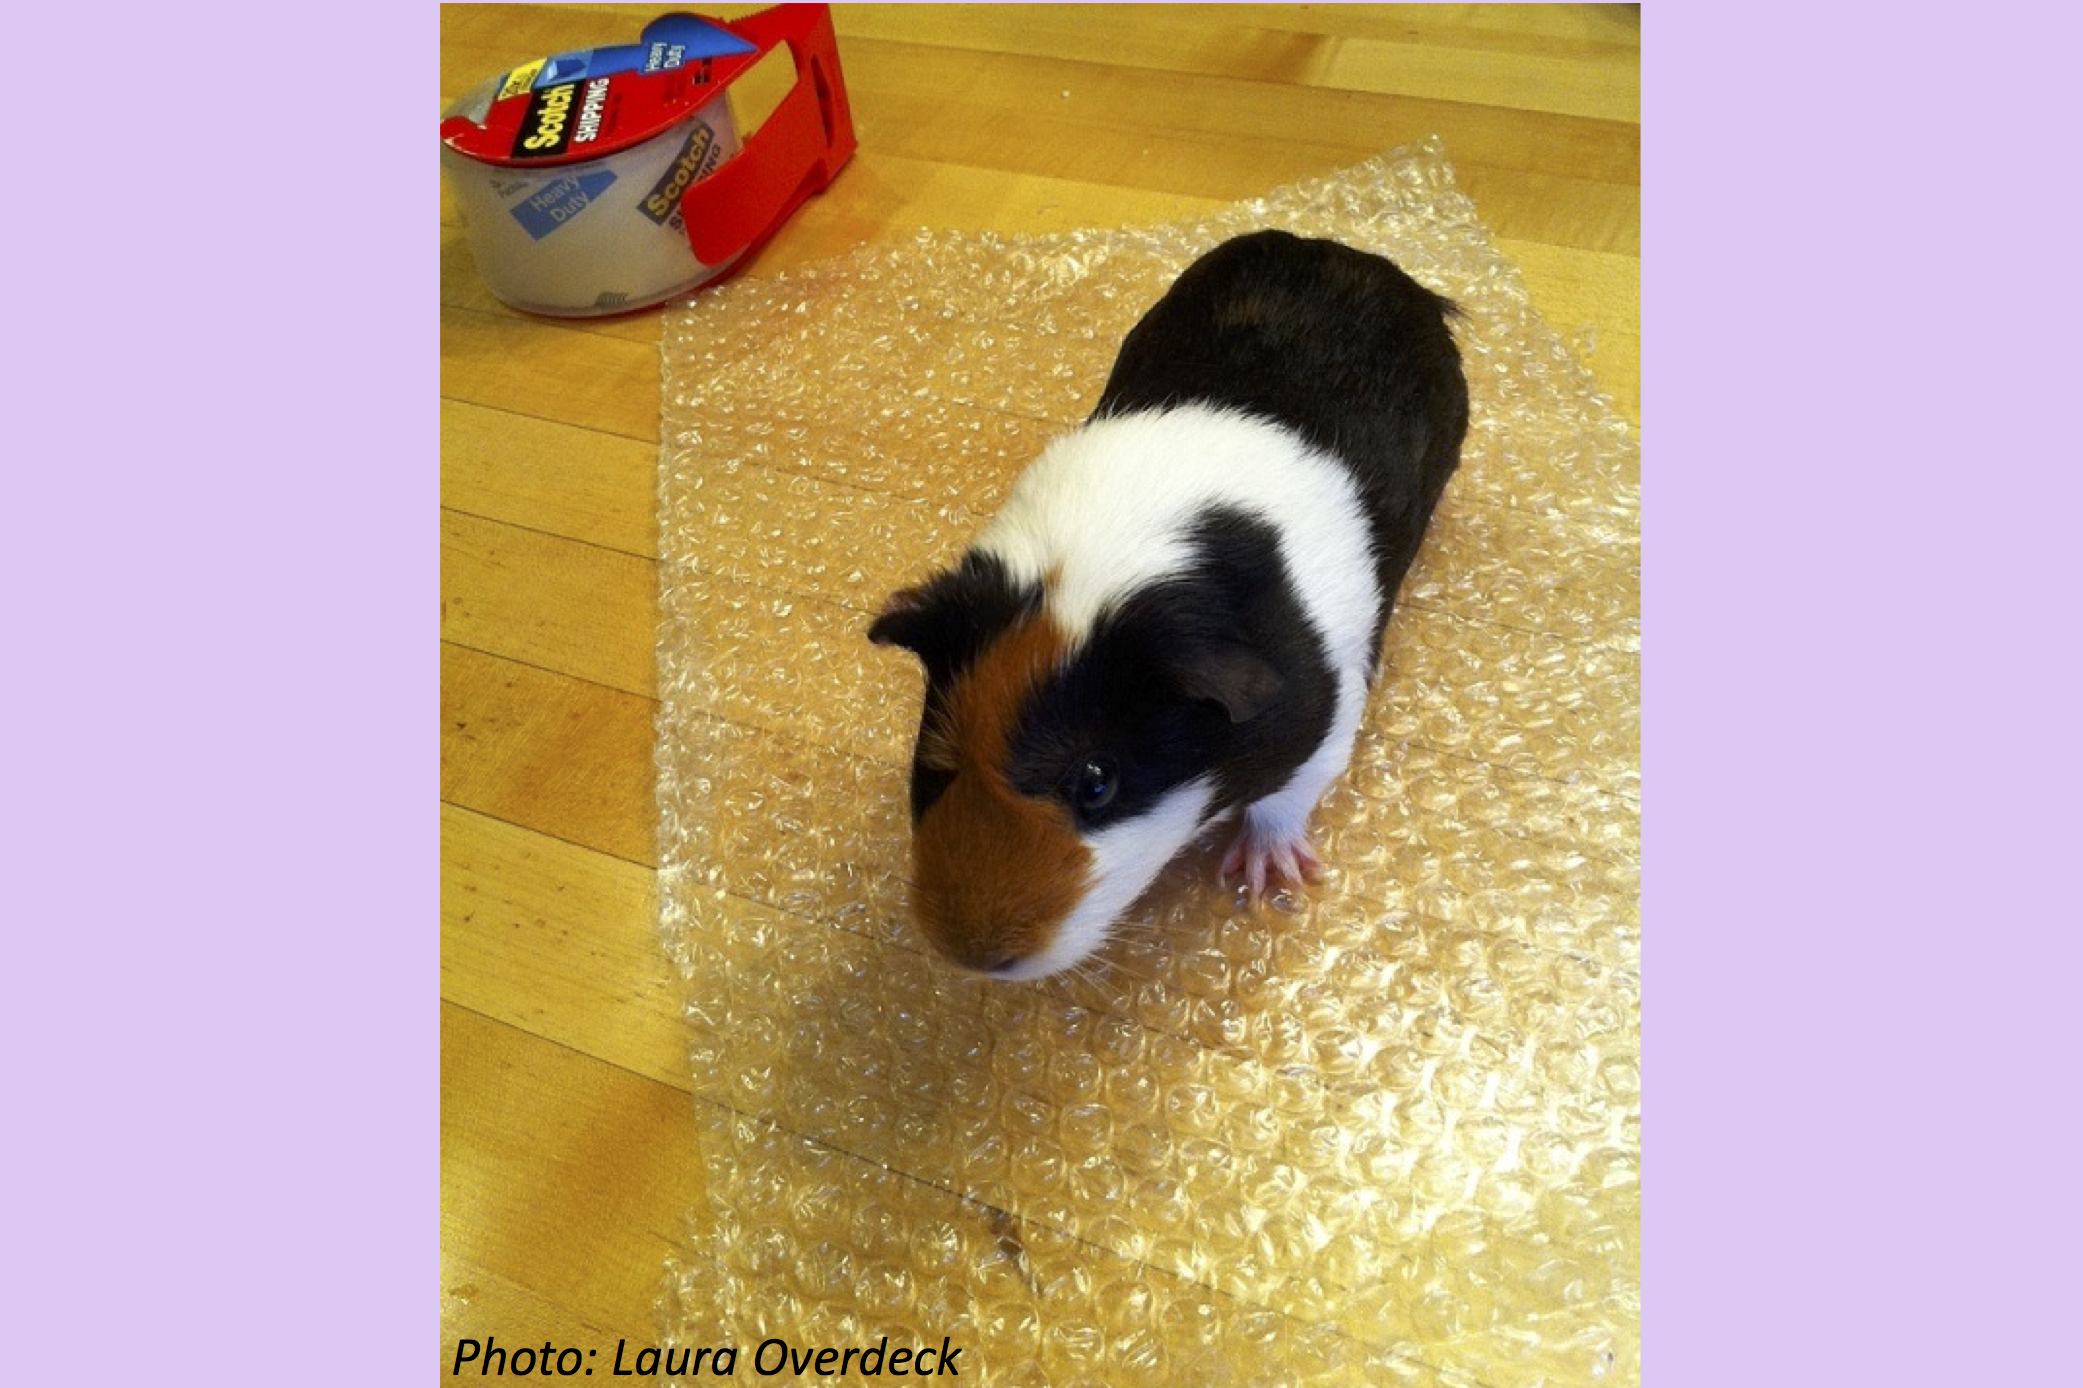 The Best Day for Bubble Wrap